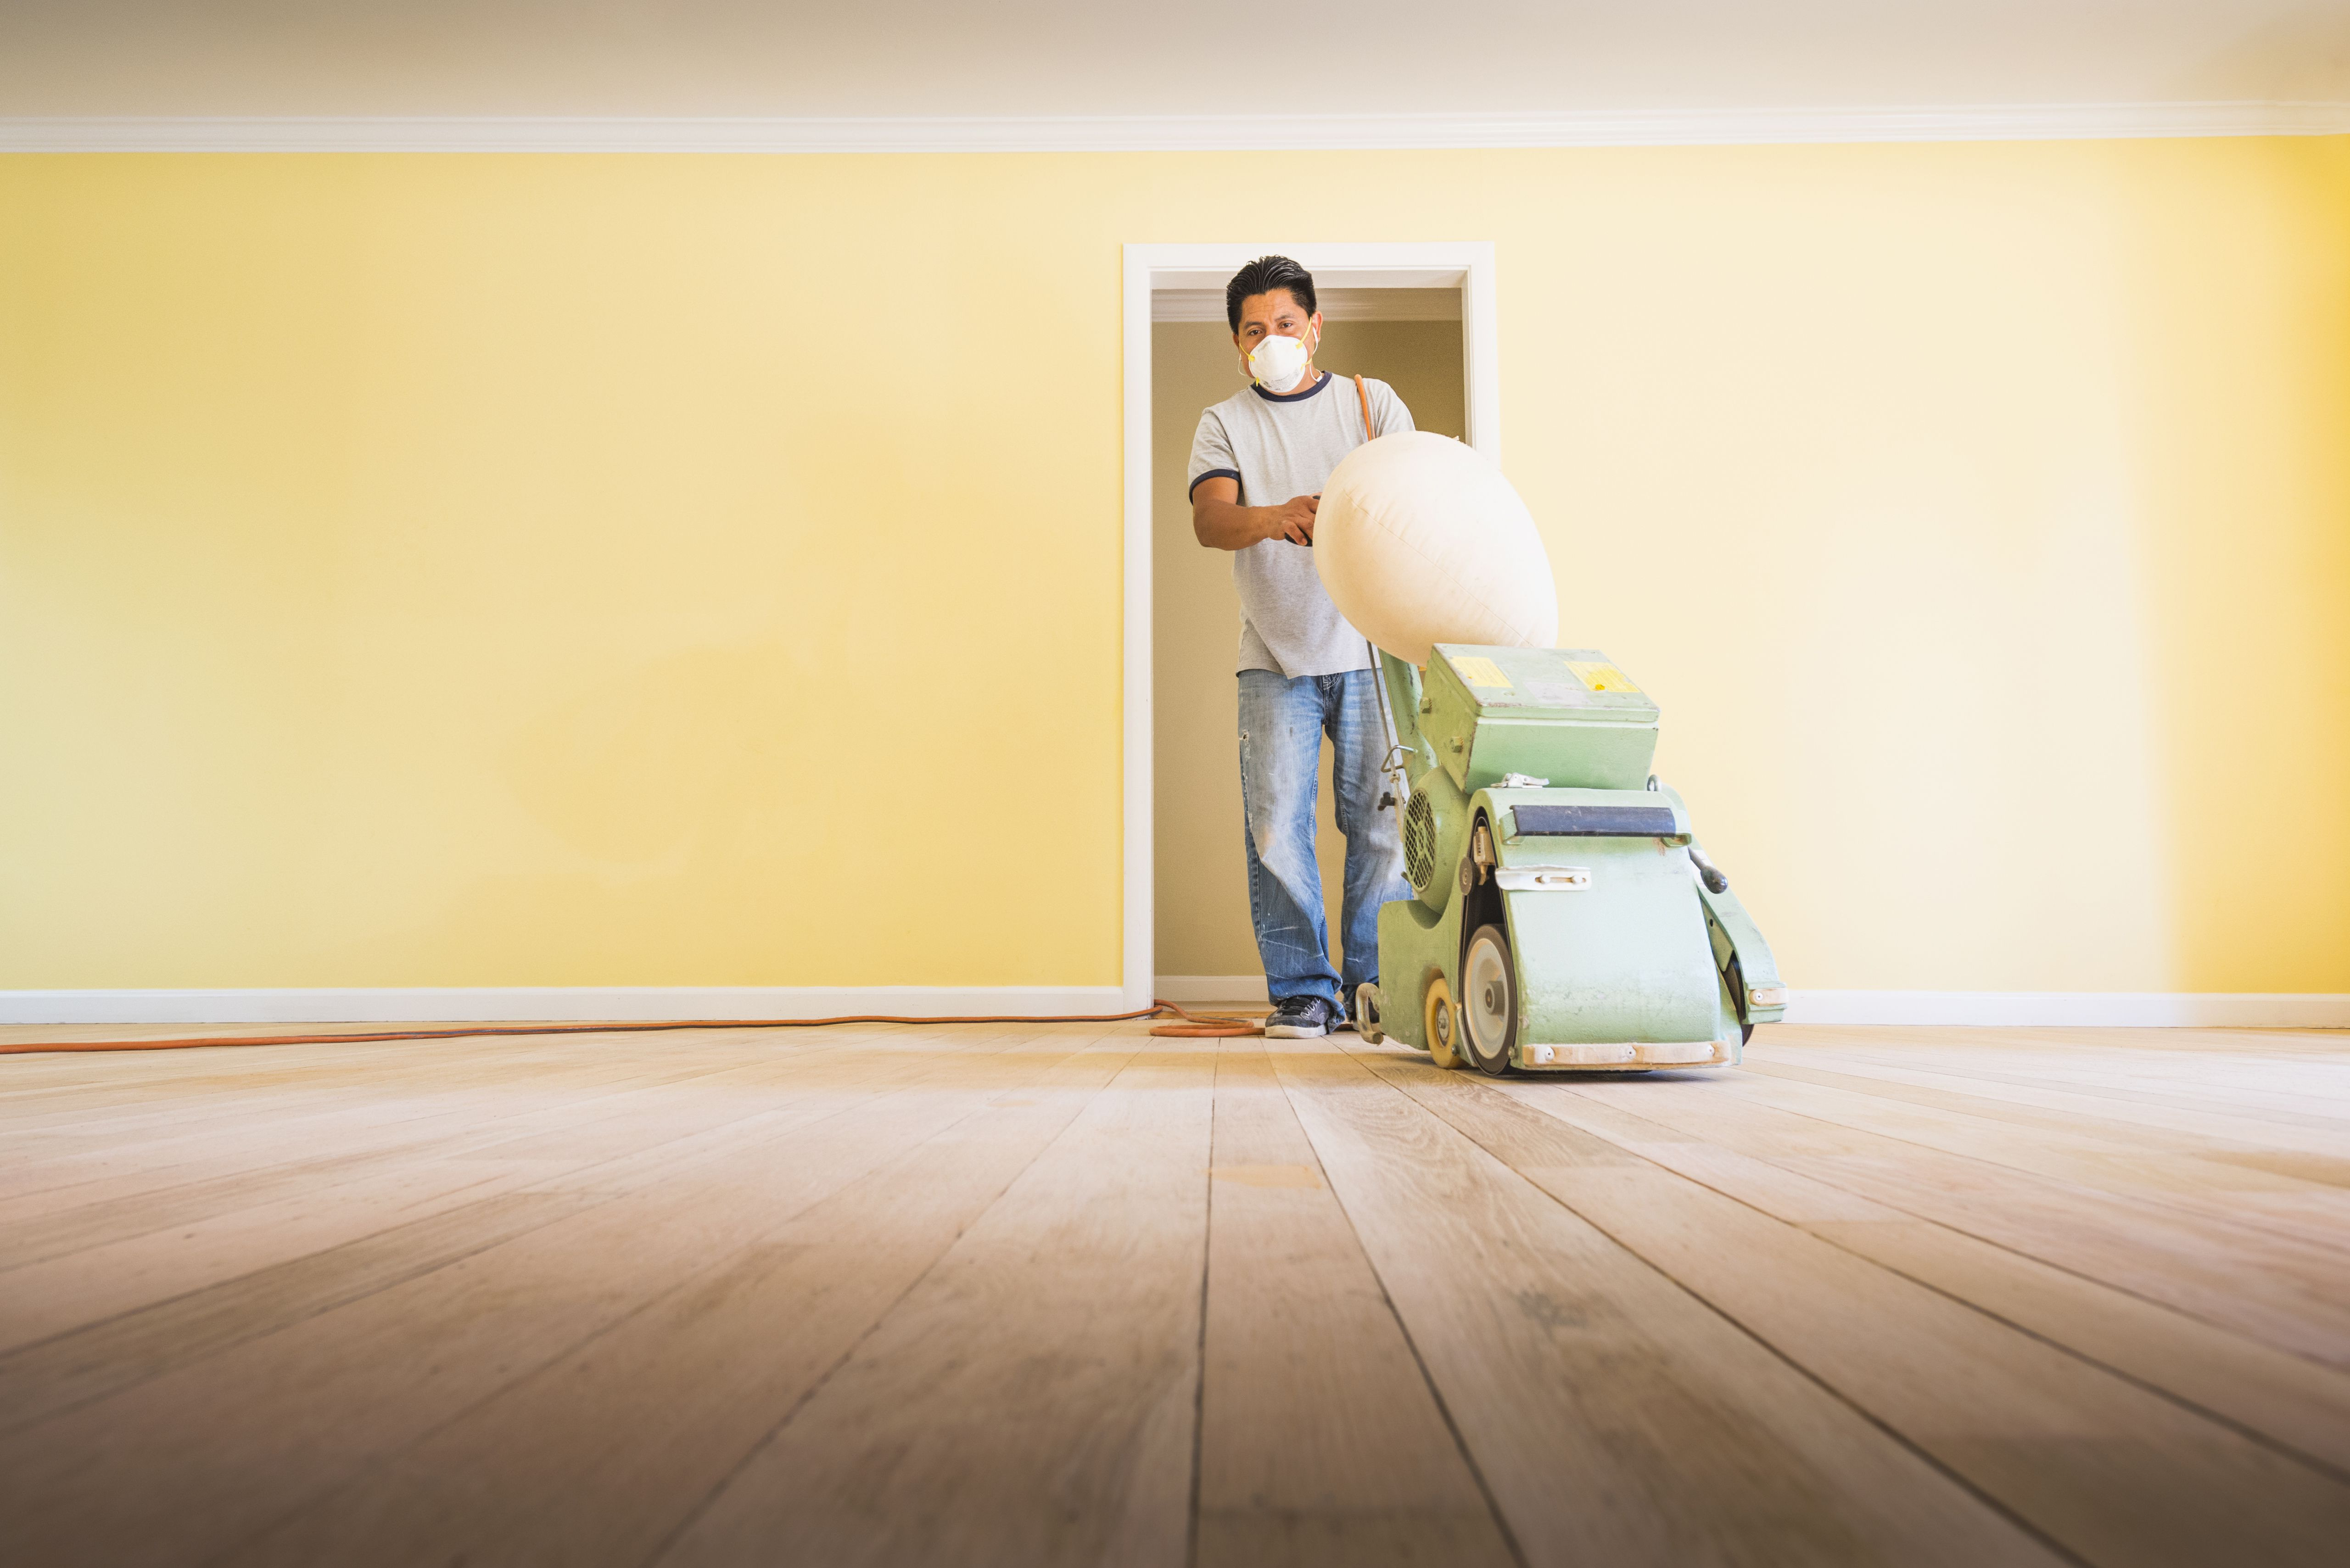 hardwood floor refinishing tacoma of should you paint walls or refinish floors first pertaining to floorsandingafterpainting 5a8f08dfae9ab80037d9d878